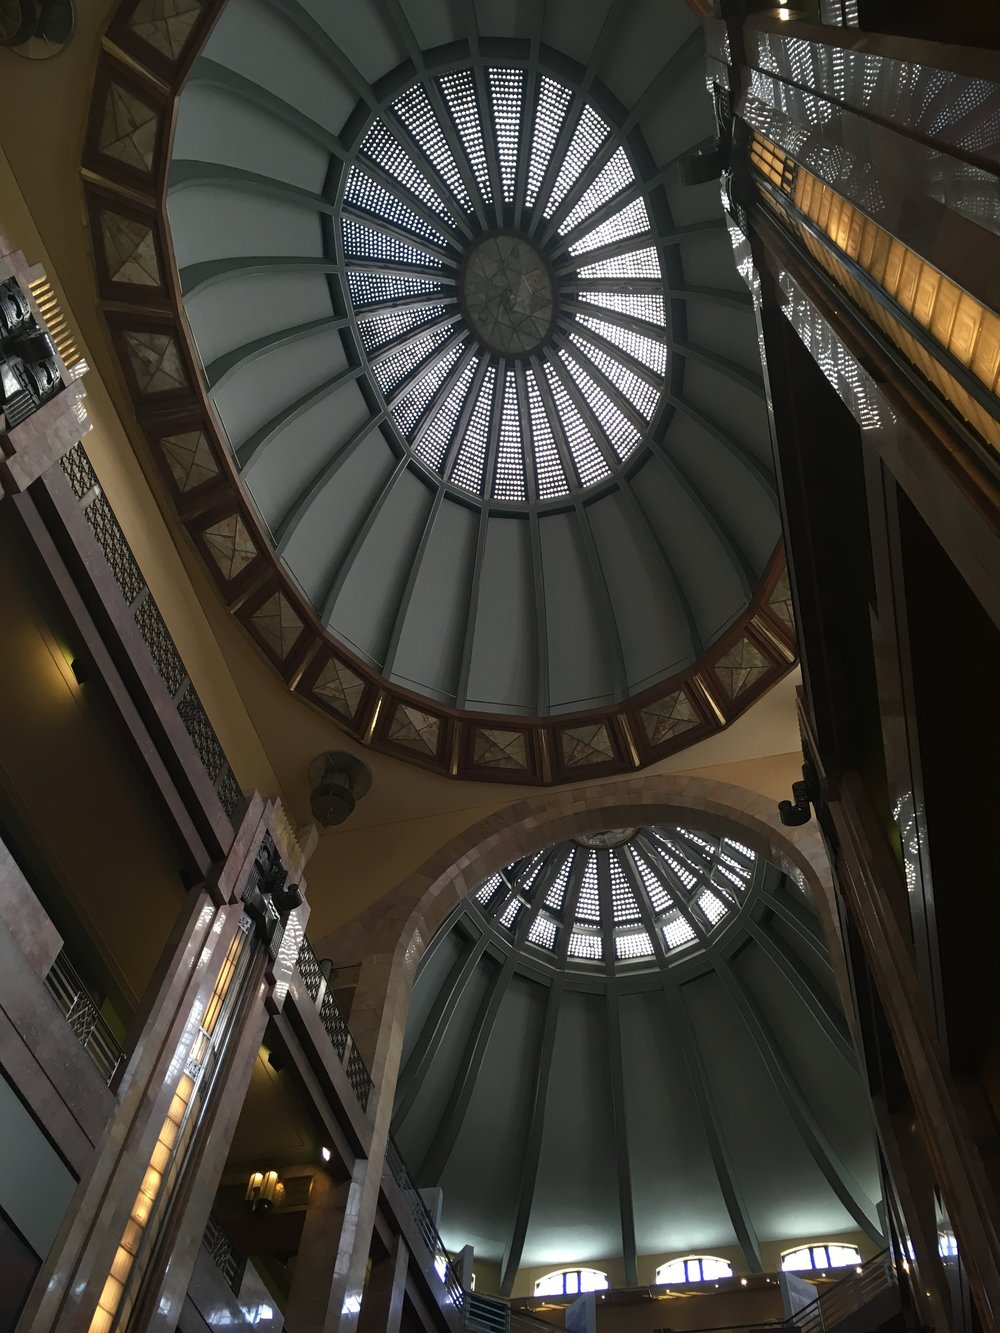 The glass dome of Pallacio de Bellas Artes